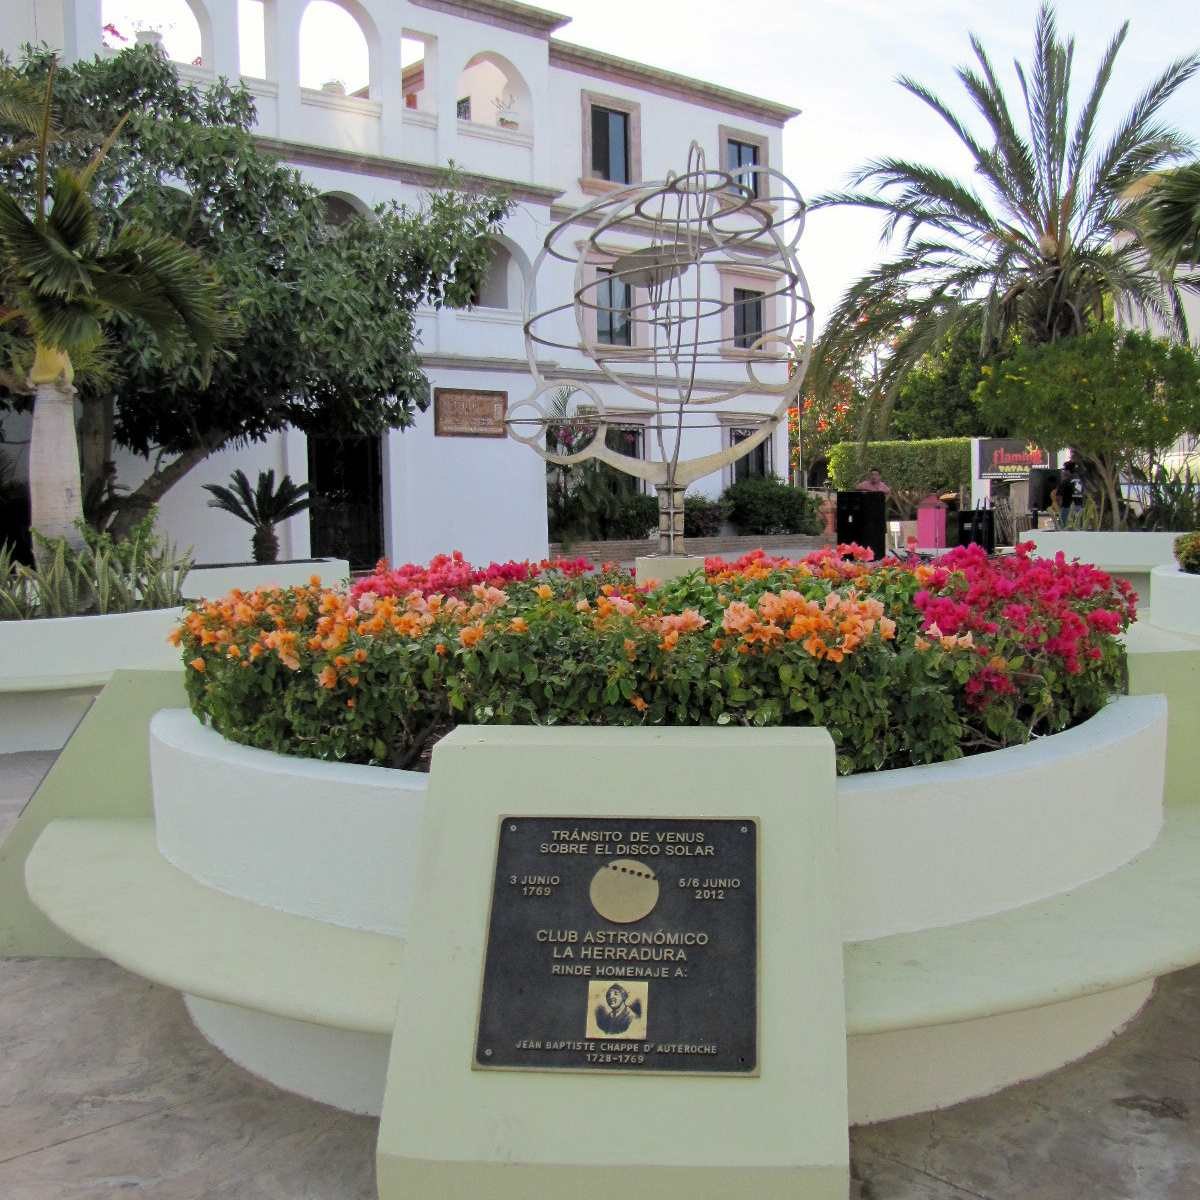 Monument marking the passage of Venus in San Jose del Cabo